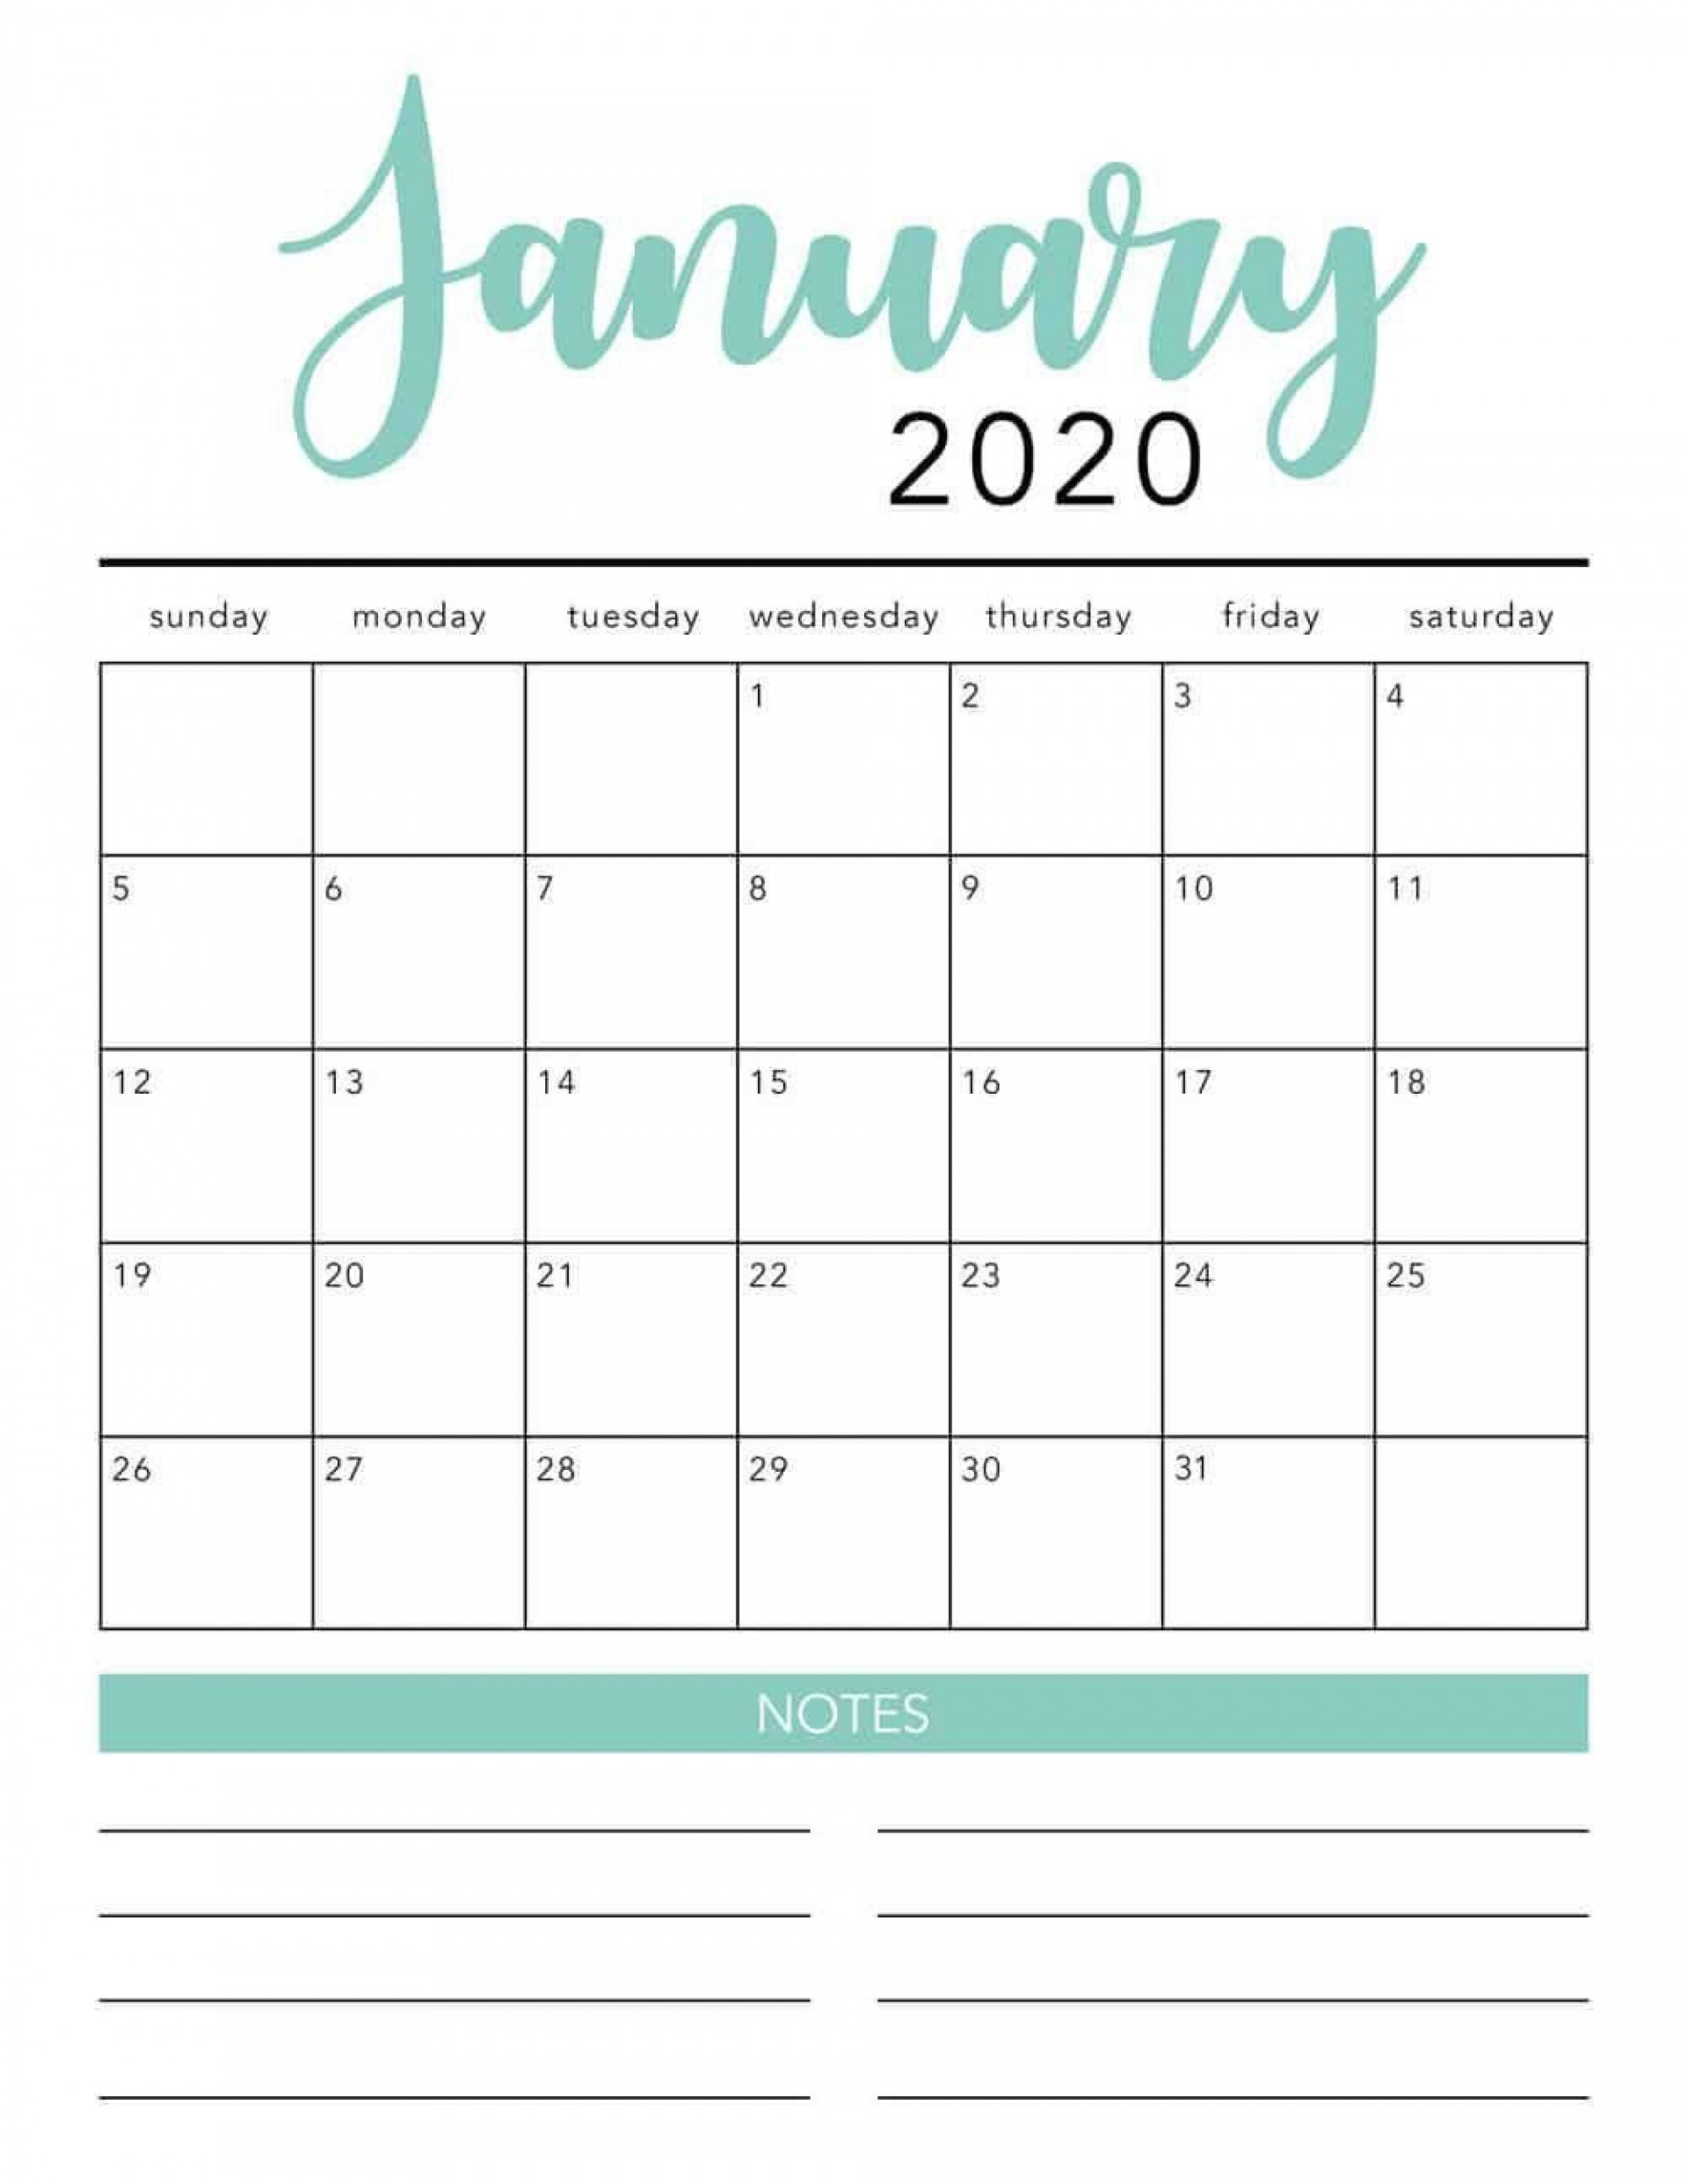 004 Astounding Monthly Calendar Template 2020 Design  Editable Free Word Excel May1920